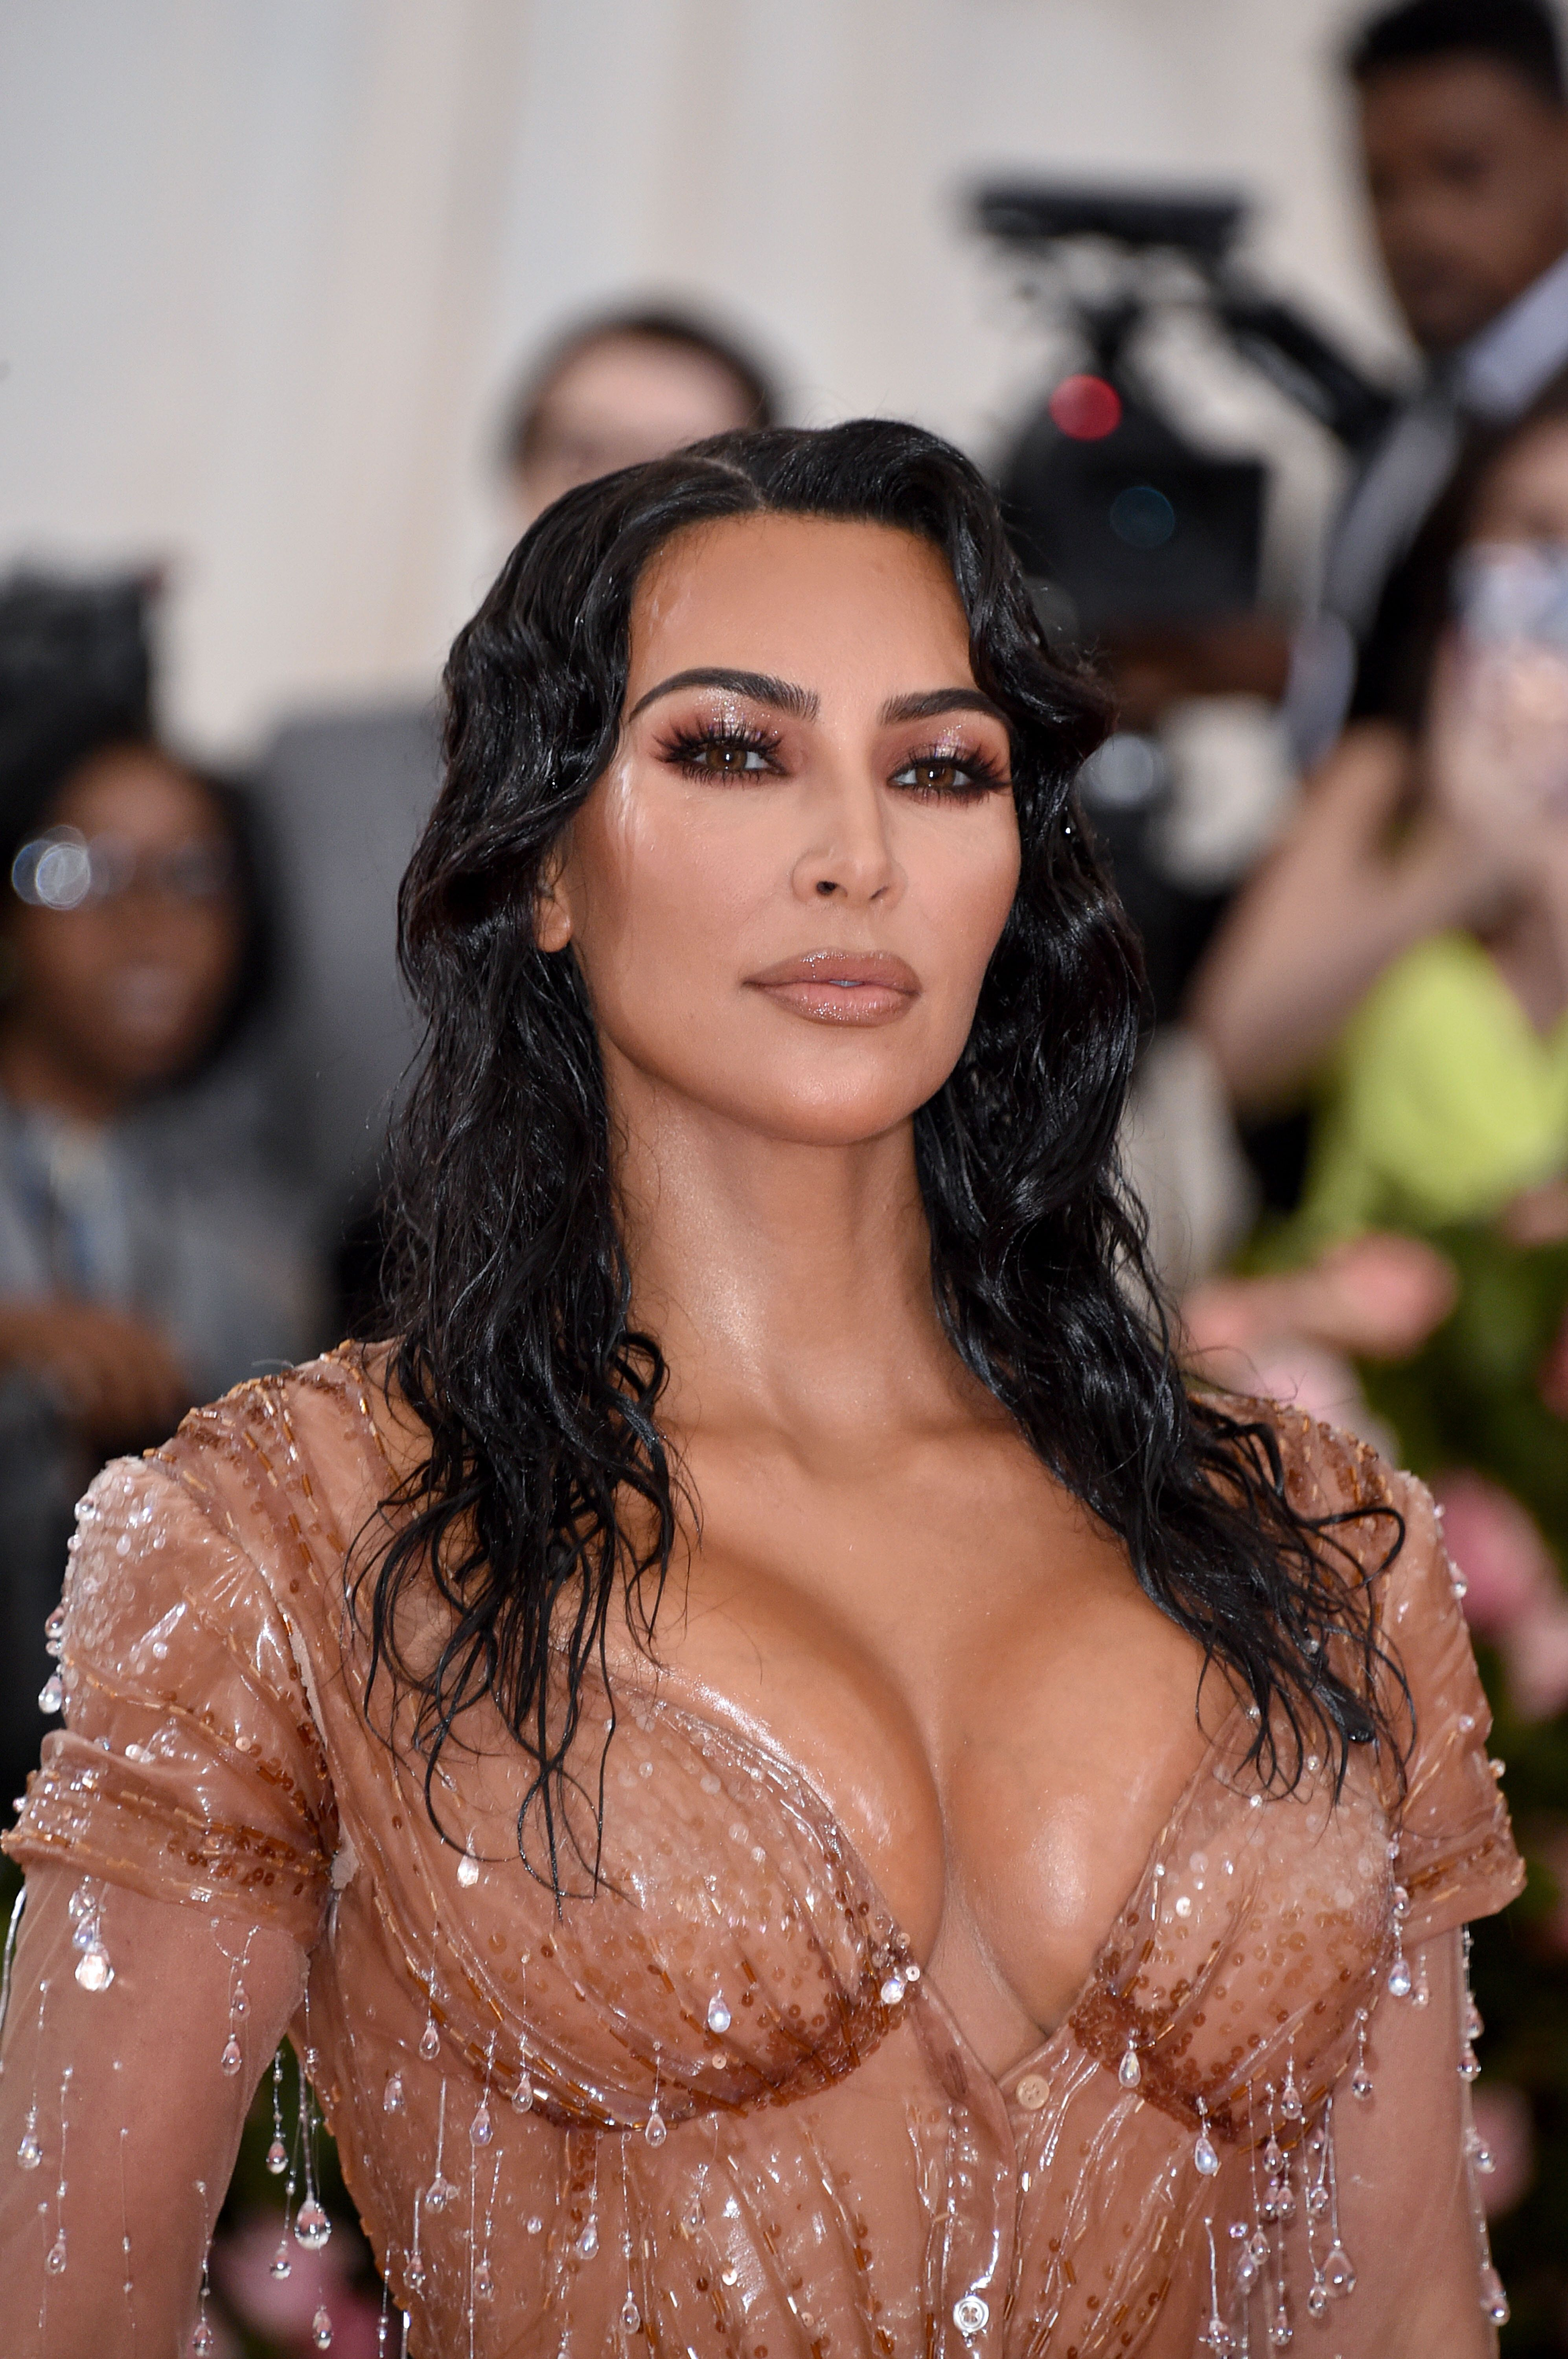 NEW YORK, NEW YORK - MAY 06: Kim Kardashian West attends The 2019 Met Gala Celebrating Camp: Notes on Fashion at Metropolitan Museum of Art on May 06, 2019 in New York City. (Photo by John Shearer/Getty Images for THR)